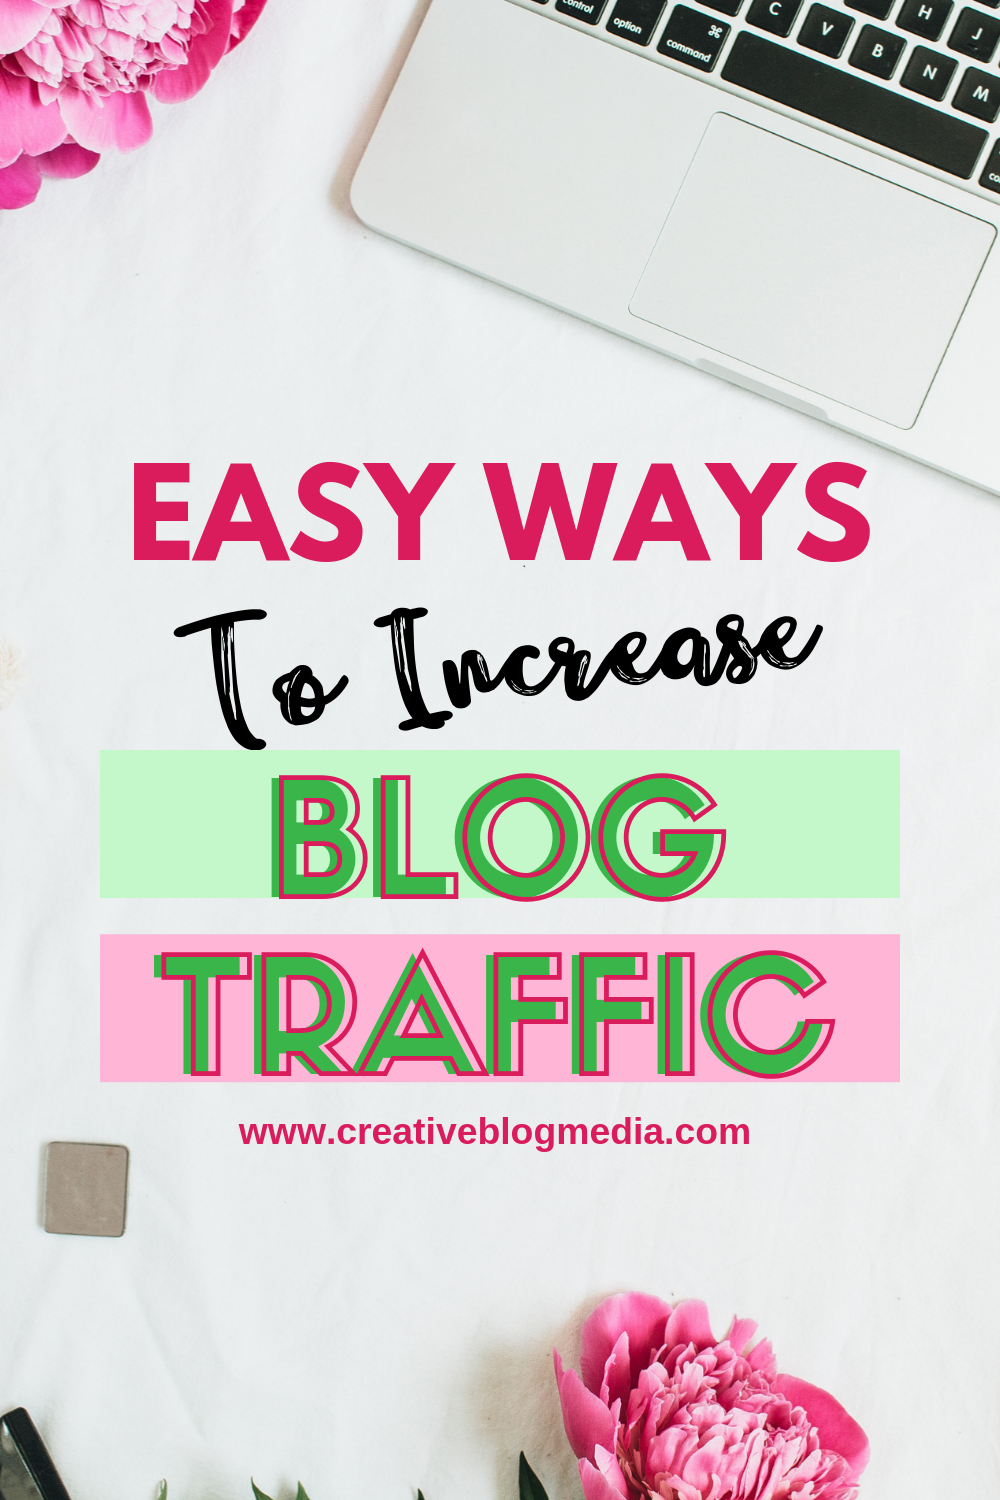 Learning how to increase your blog traffic is probably one of the biggest problems every blogger faces from time to time. Check out these Easy Ways To Increase Blog Traffic. Here are some helpful blogging tips. #blogging #bloggingtips